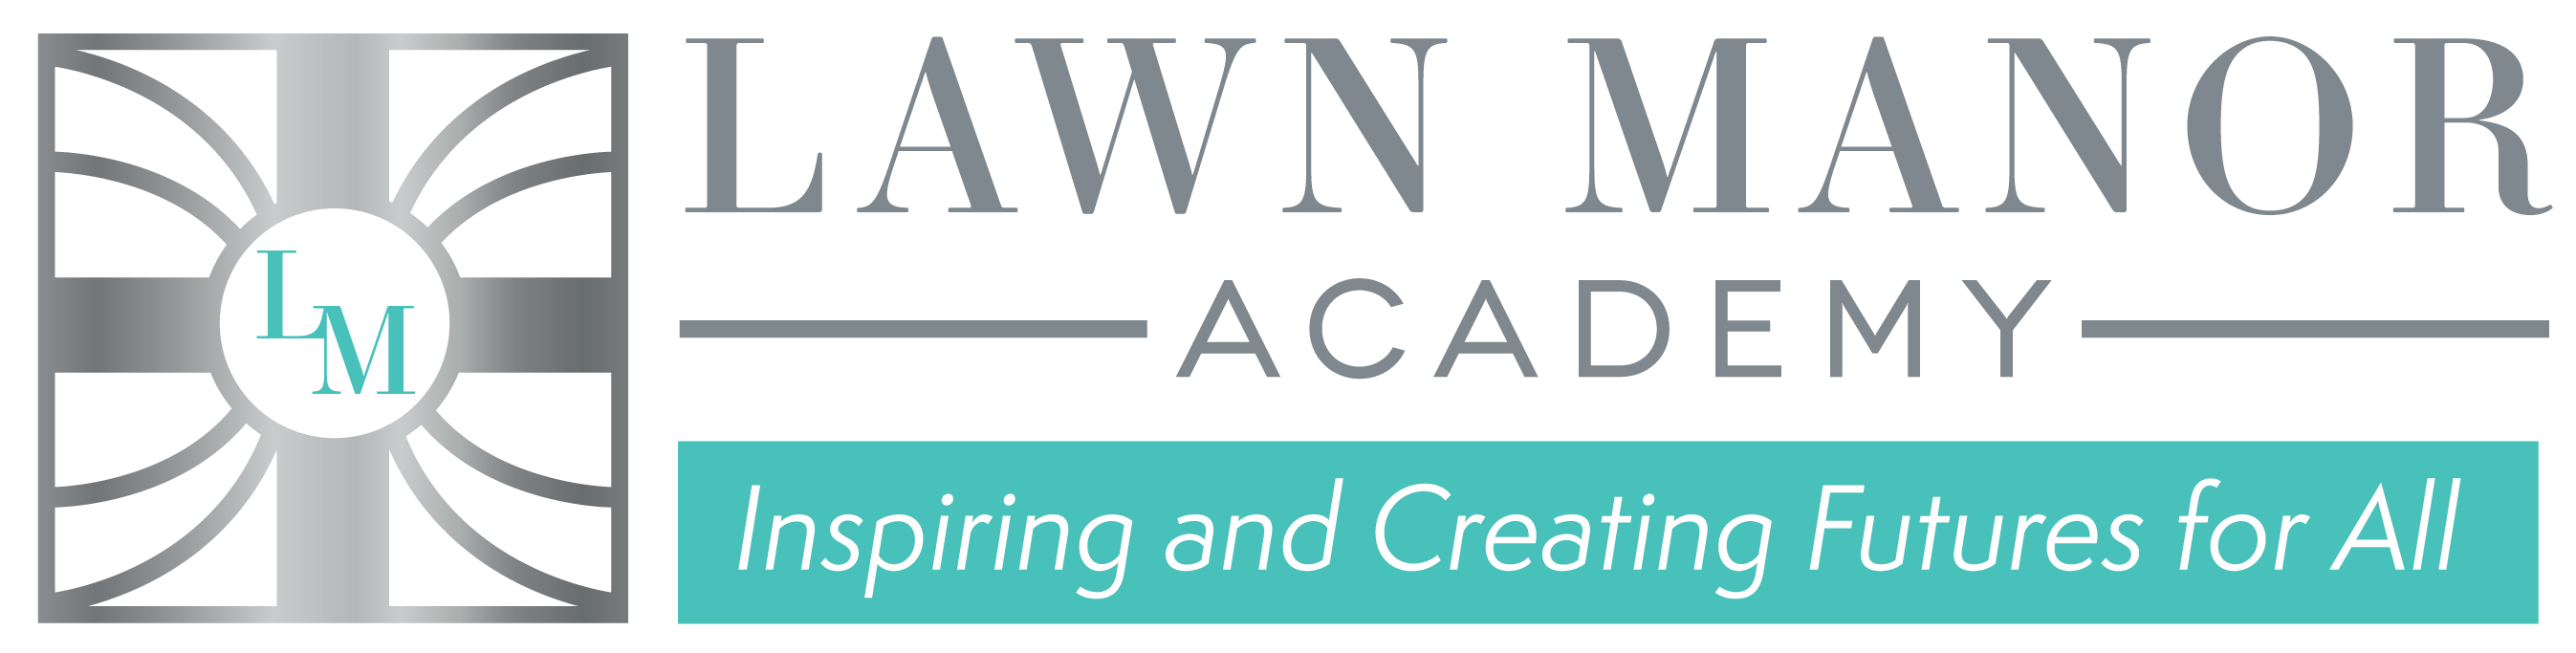 Lawn Manor Academy Specialist in Maths Computing and Science, Salcombe Grove, Swindon, Wilts SN3 1ER UK